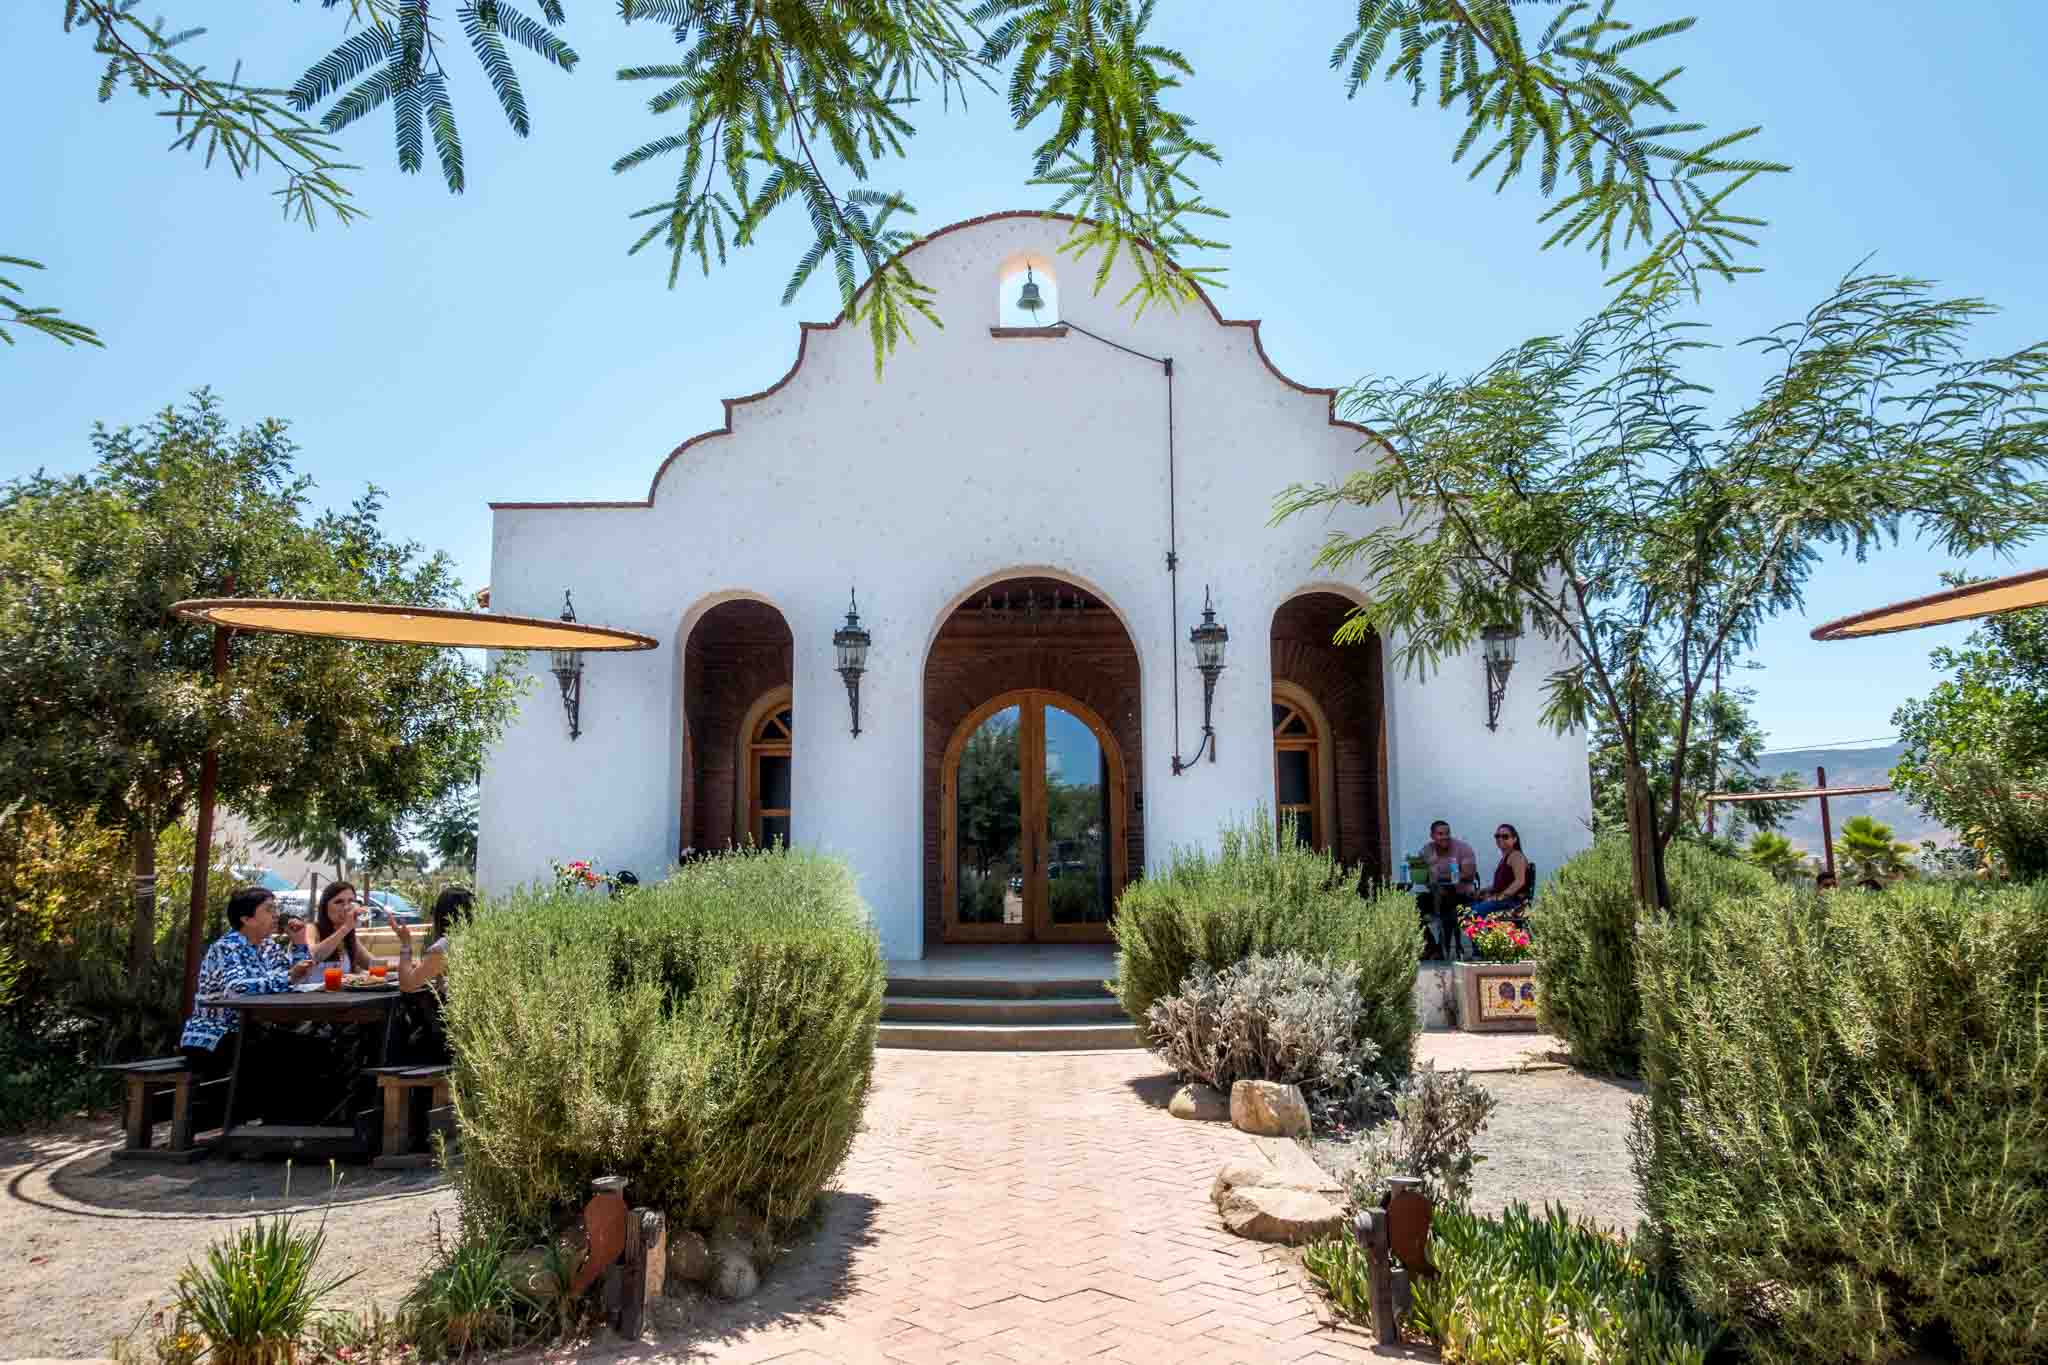 Adobe Guadalupe winery in Valle de Guadalupe Baja California - this is one of the most popular Guadalupe Valley wineries.  It is a common stop on the tours valle de guadalupe.